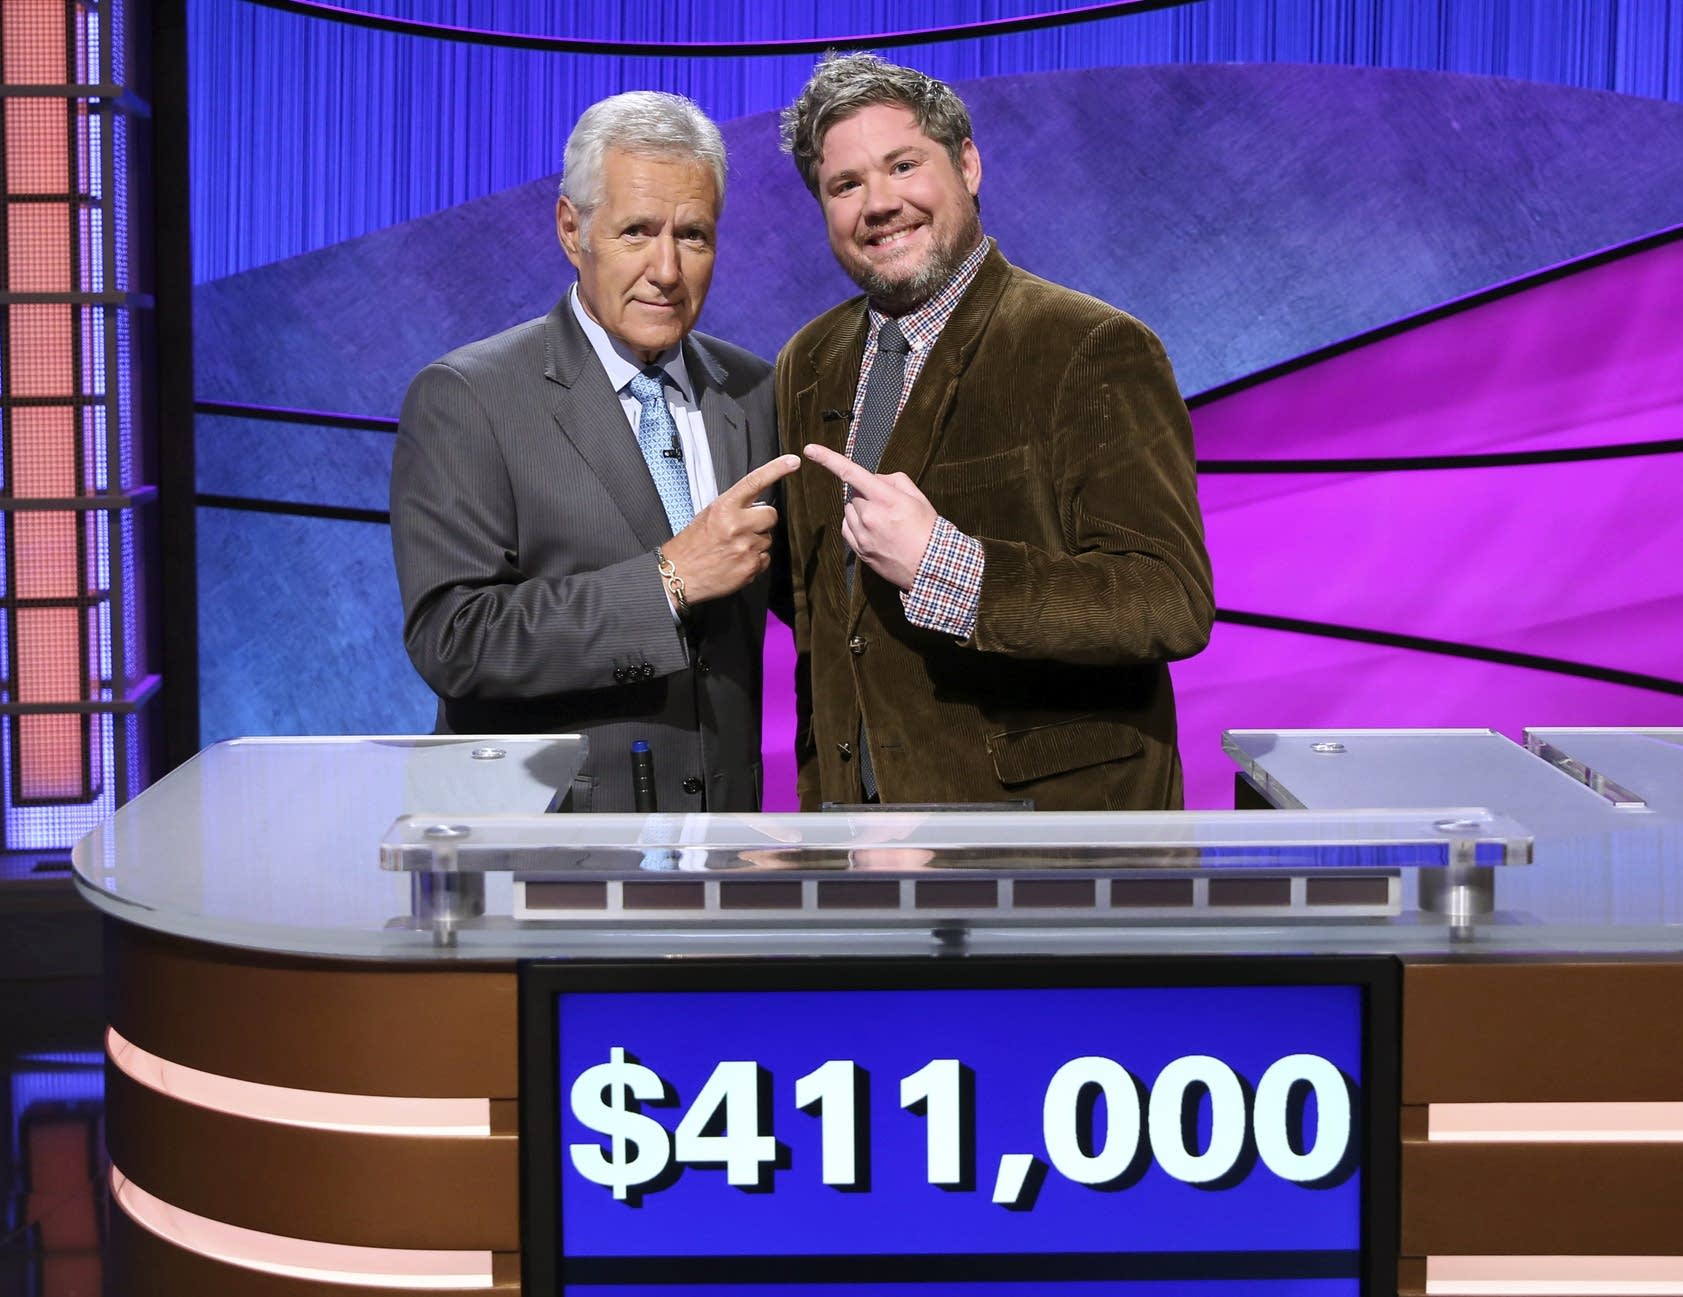 Alex Trebek and Austin Rogers